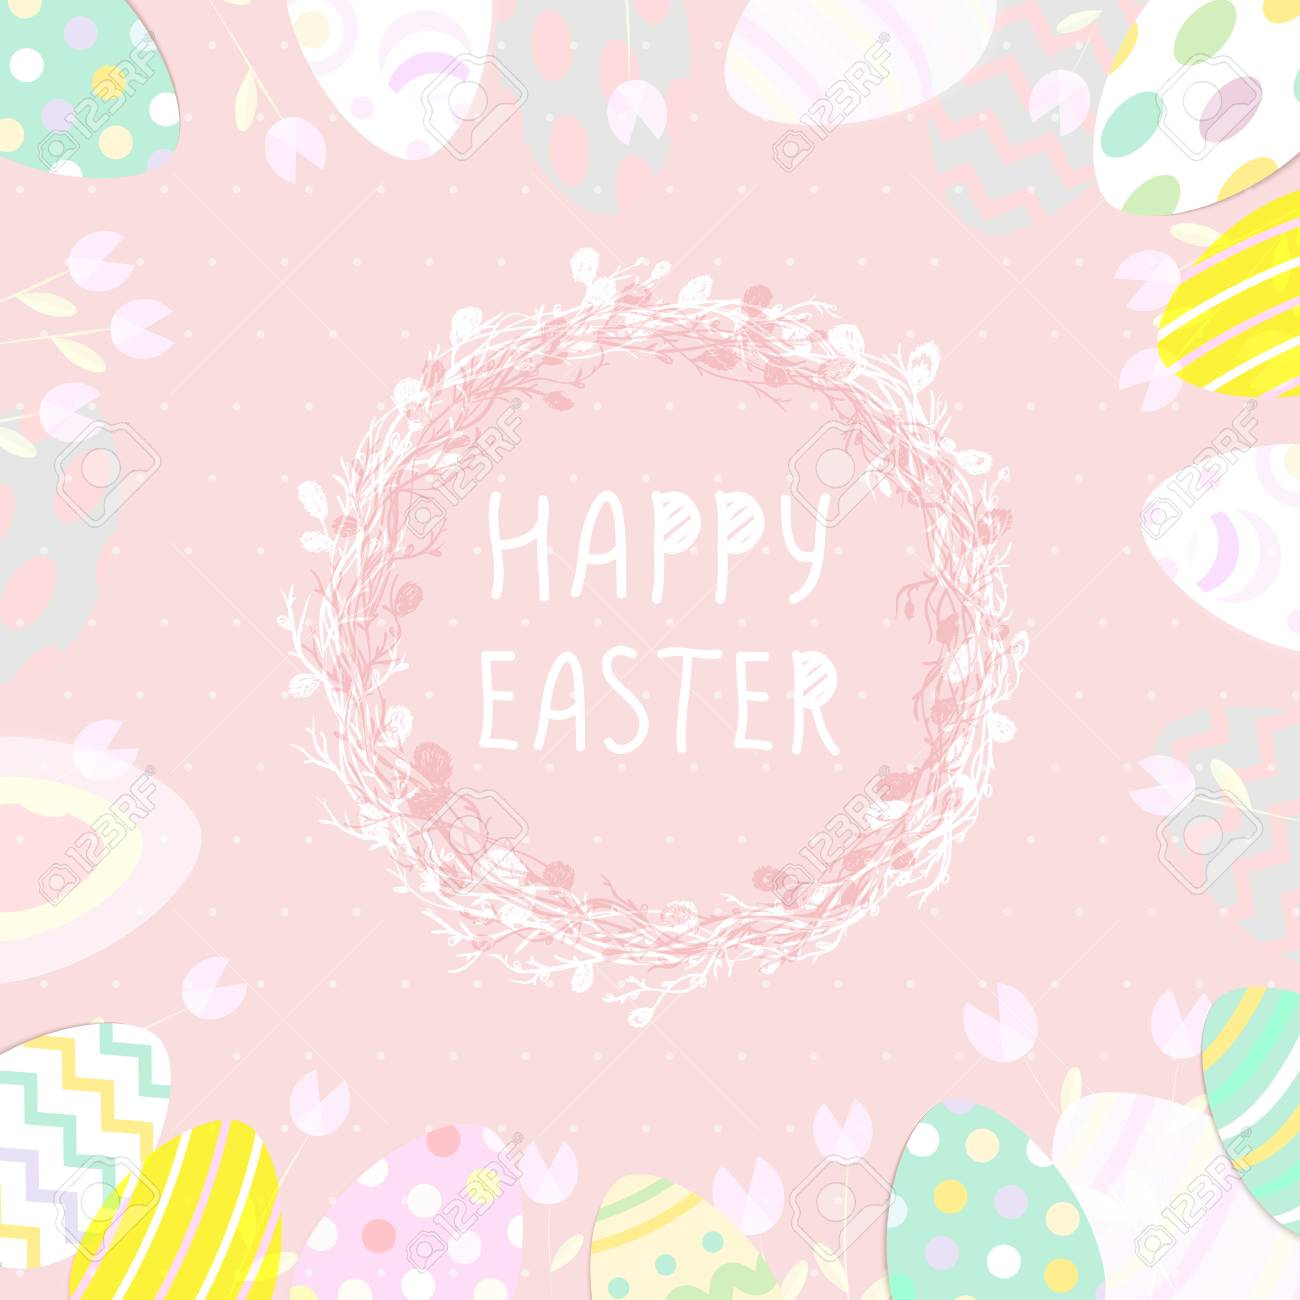 Cute Easter Eggs In A Wicker Nest Greeting Card On A Blue